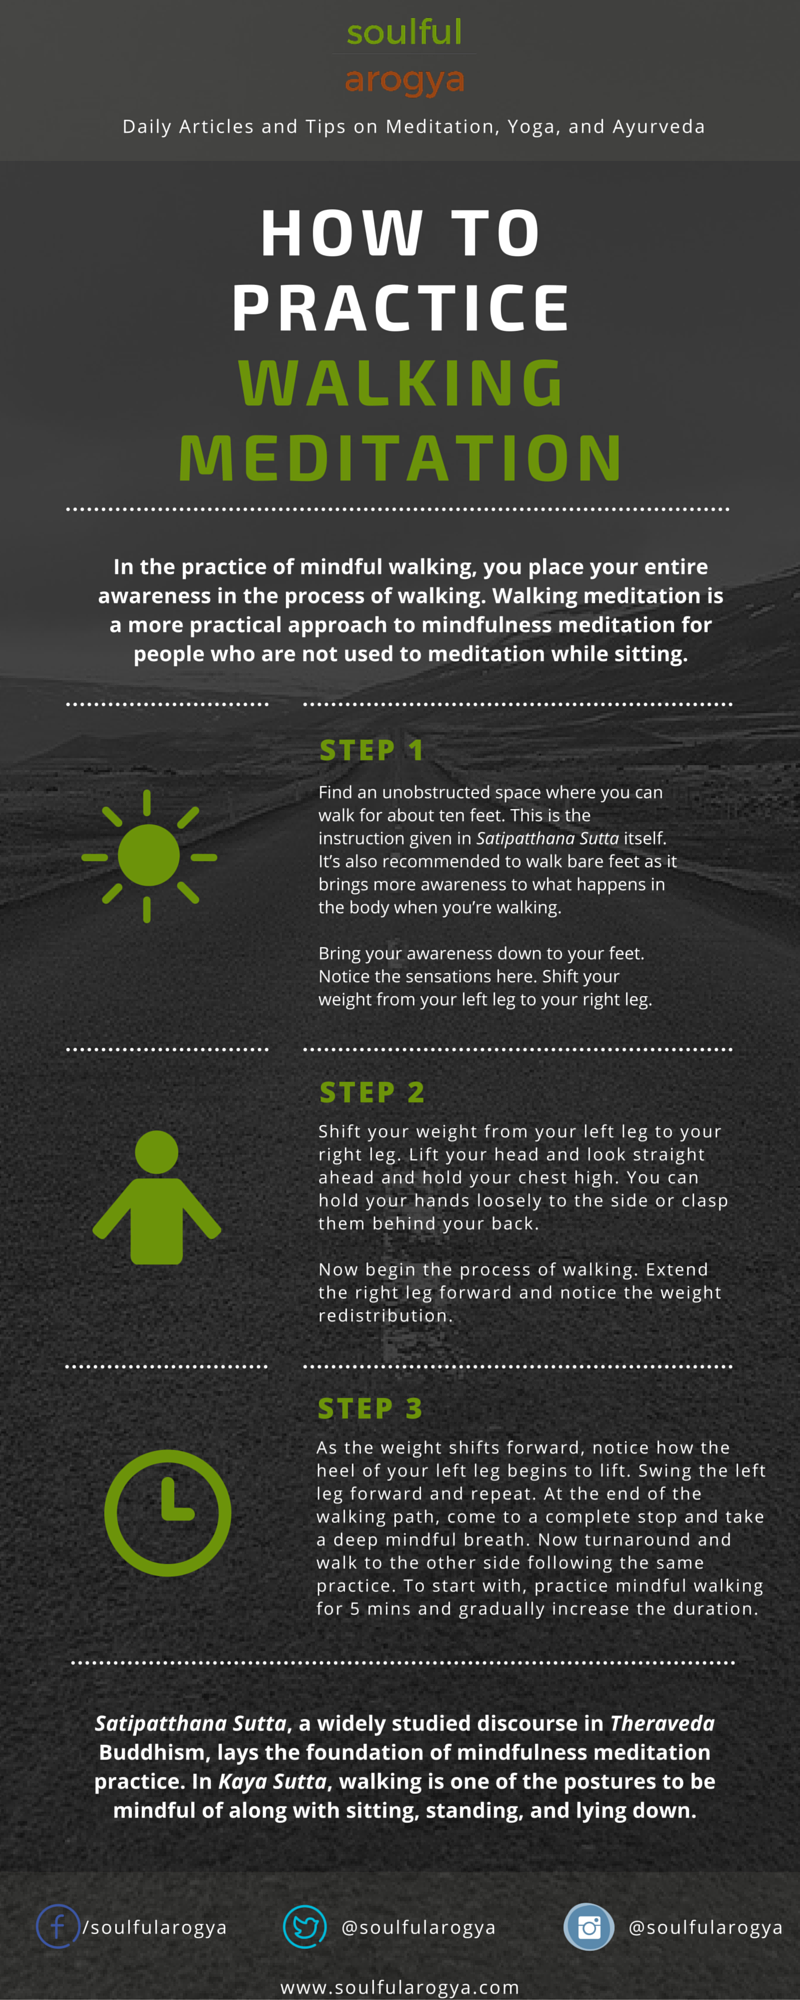 How to Practice Walking Meditation Infographic